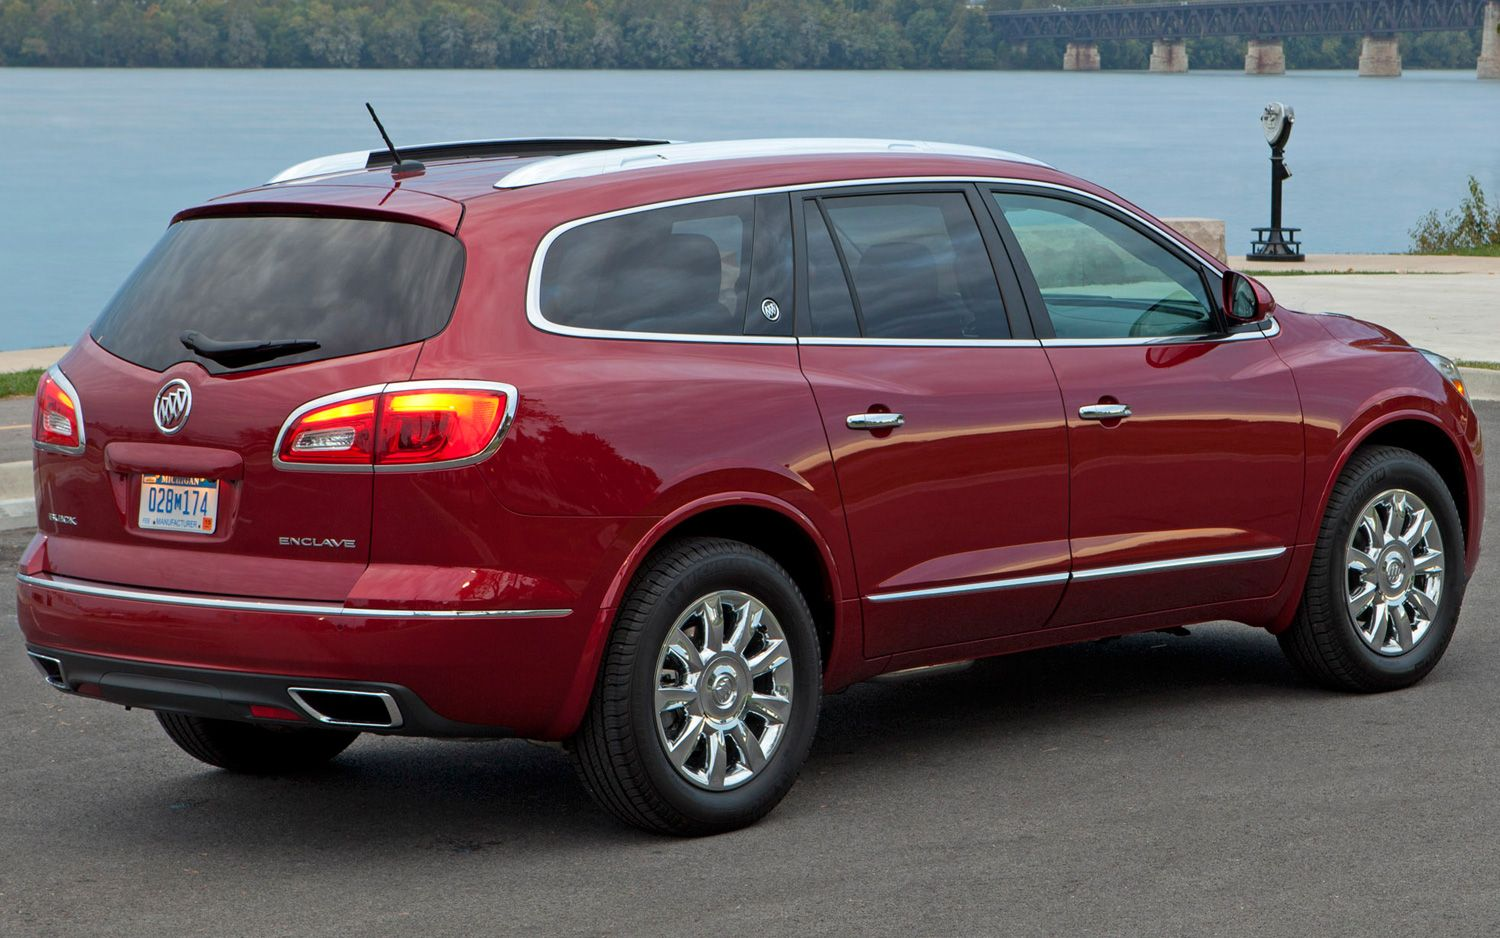 2013 Buick Enclave Rear Side View In Red Buick Enclave Buick My Ride